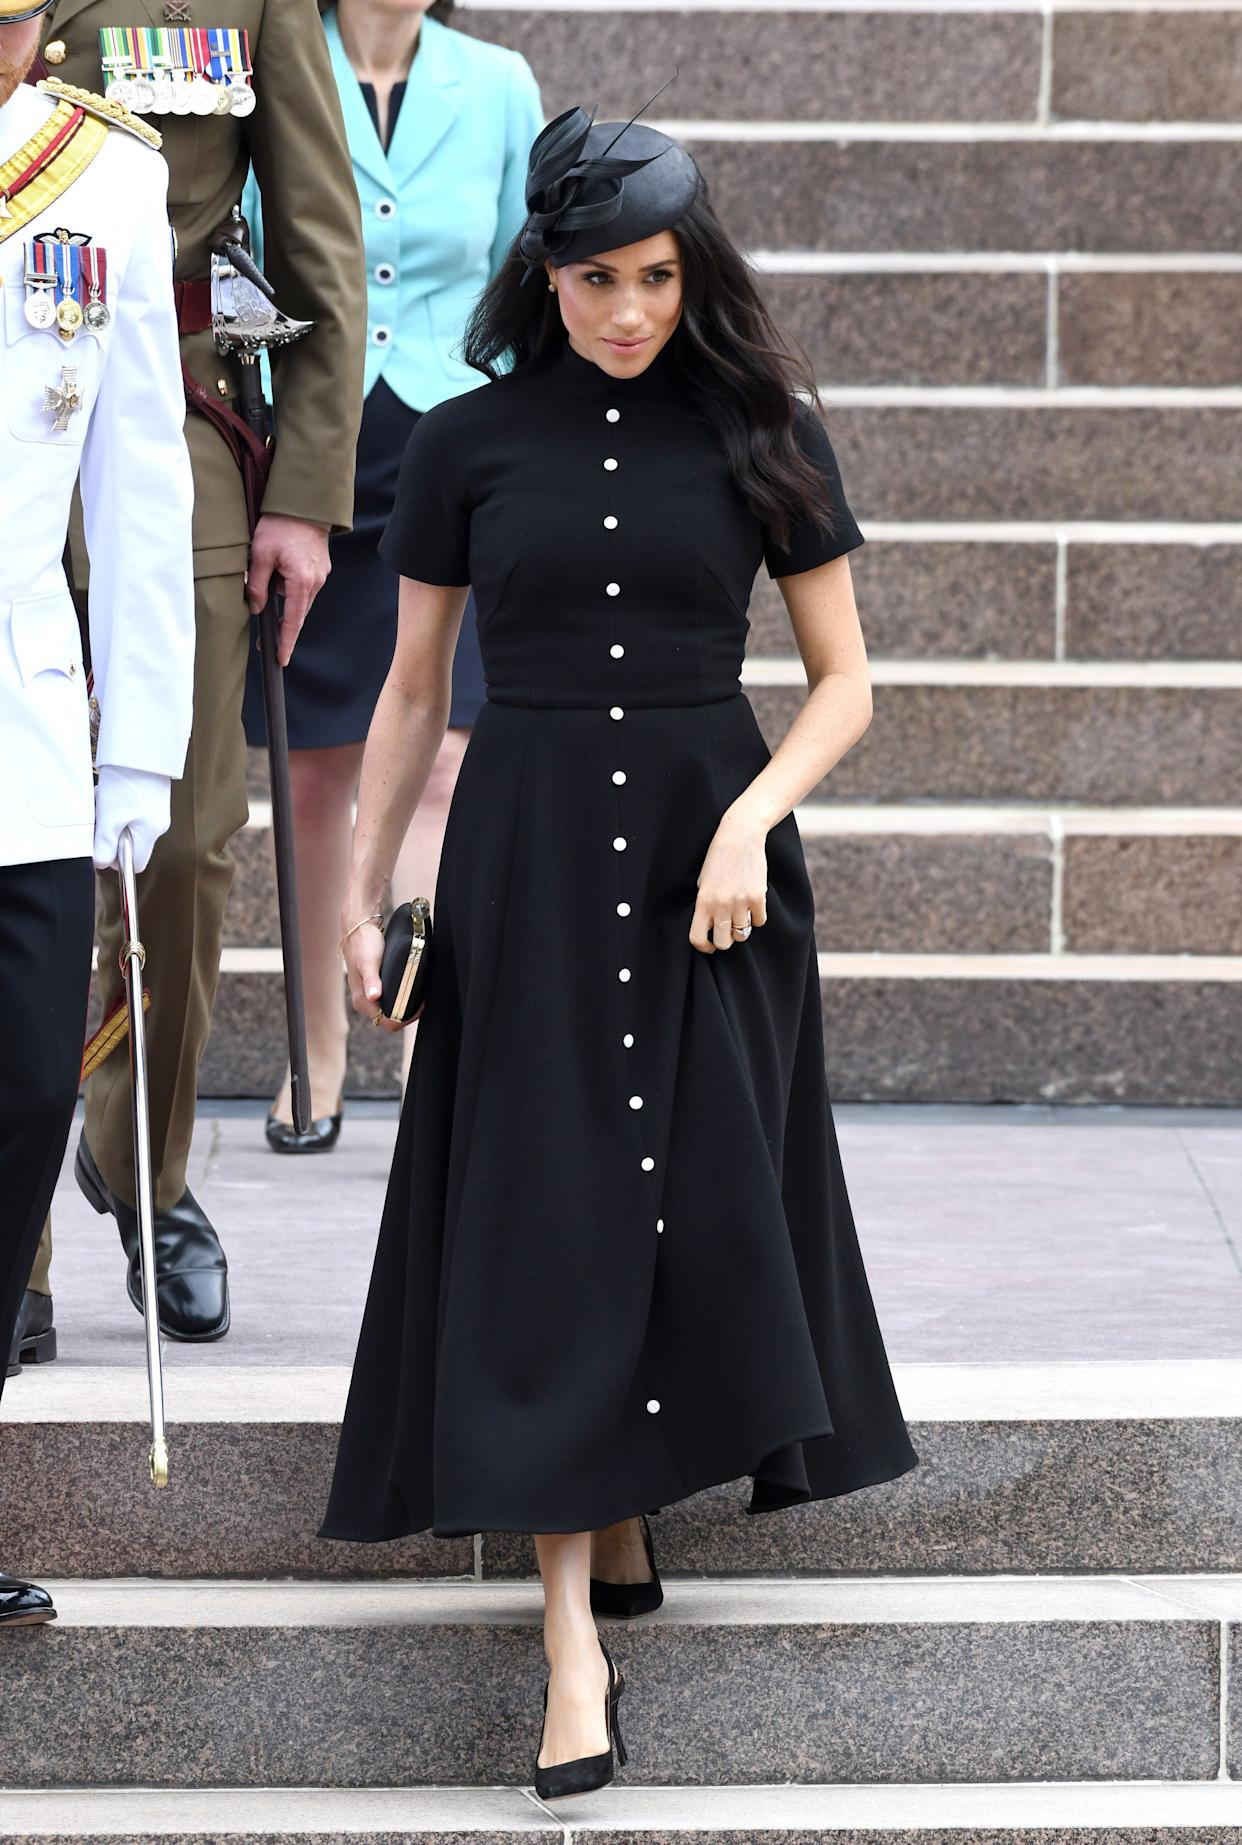 Meghan, Duchess of Sussex, attends the official opening of the extension of the ANZAC Memorial in Hyde Park on Oct. 20 in Sydney.